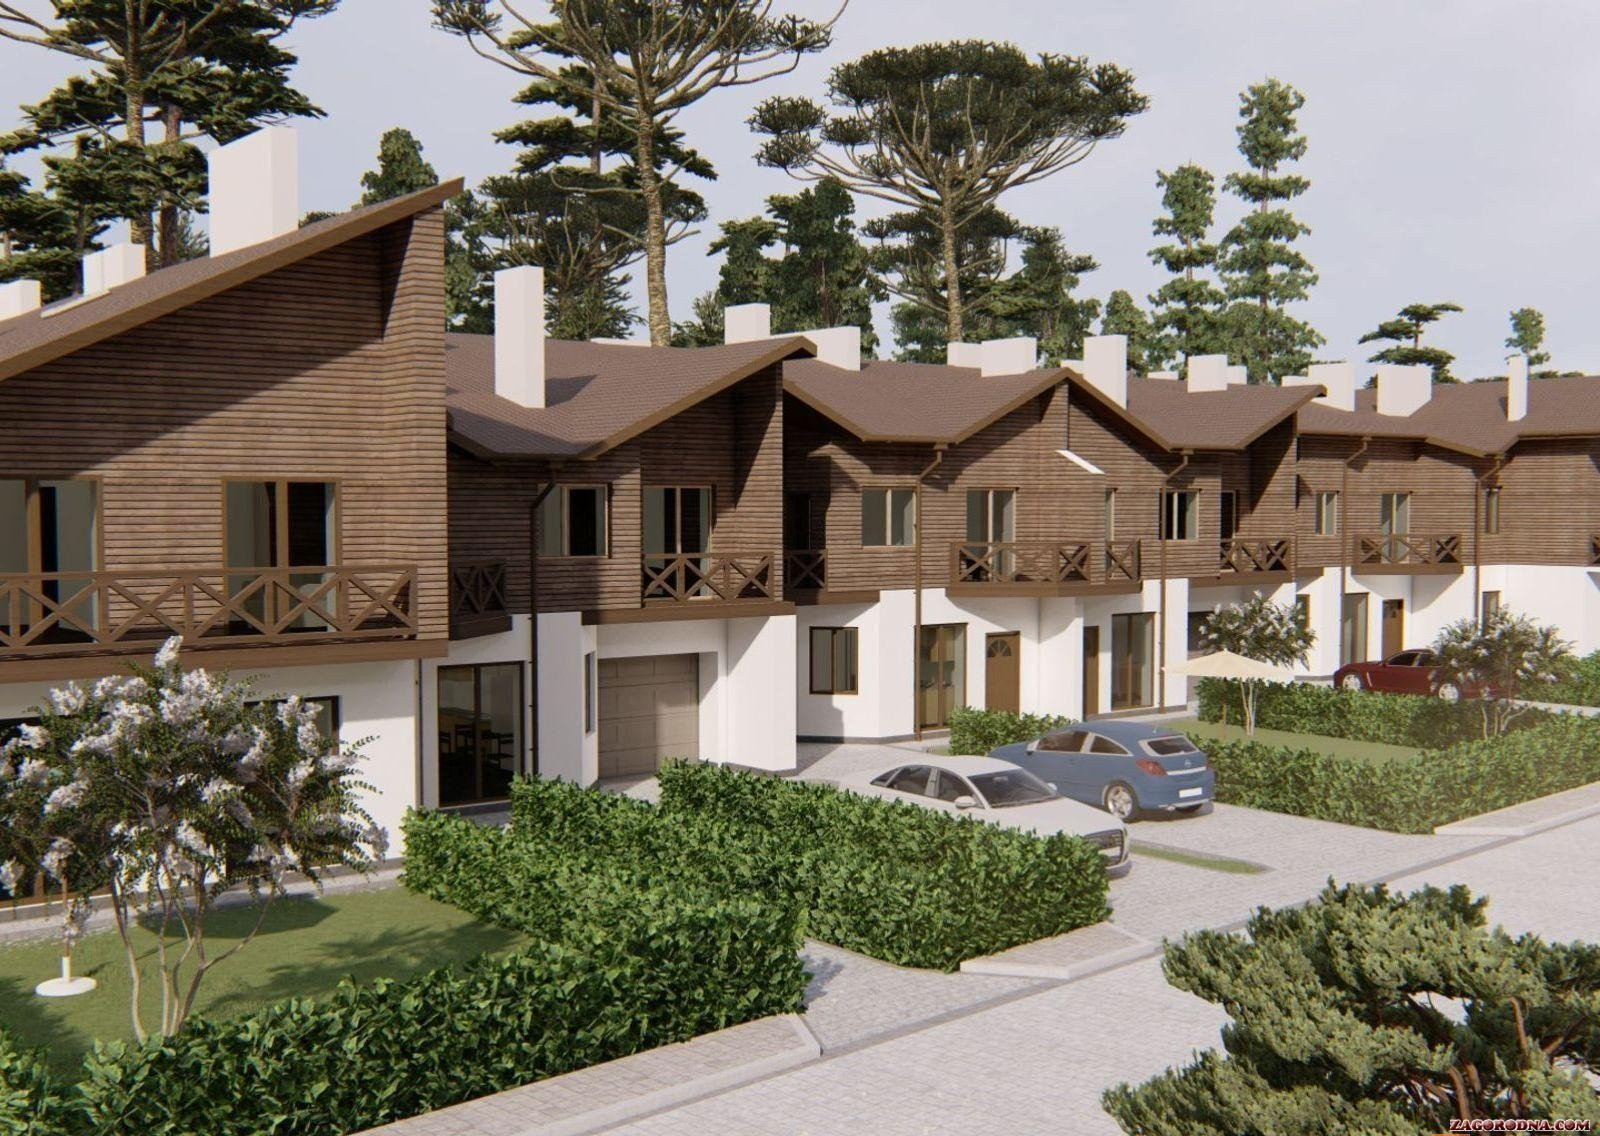 Buy a cottage town Bruhsell townhouses